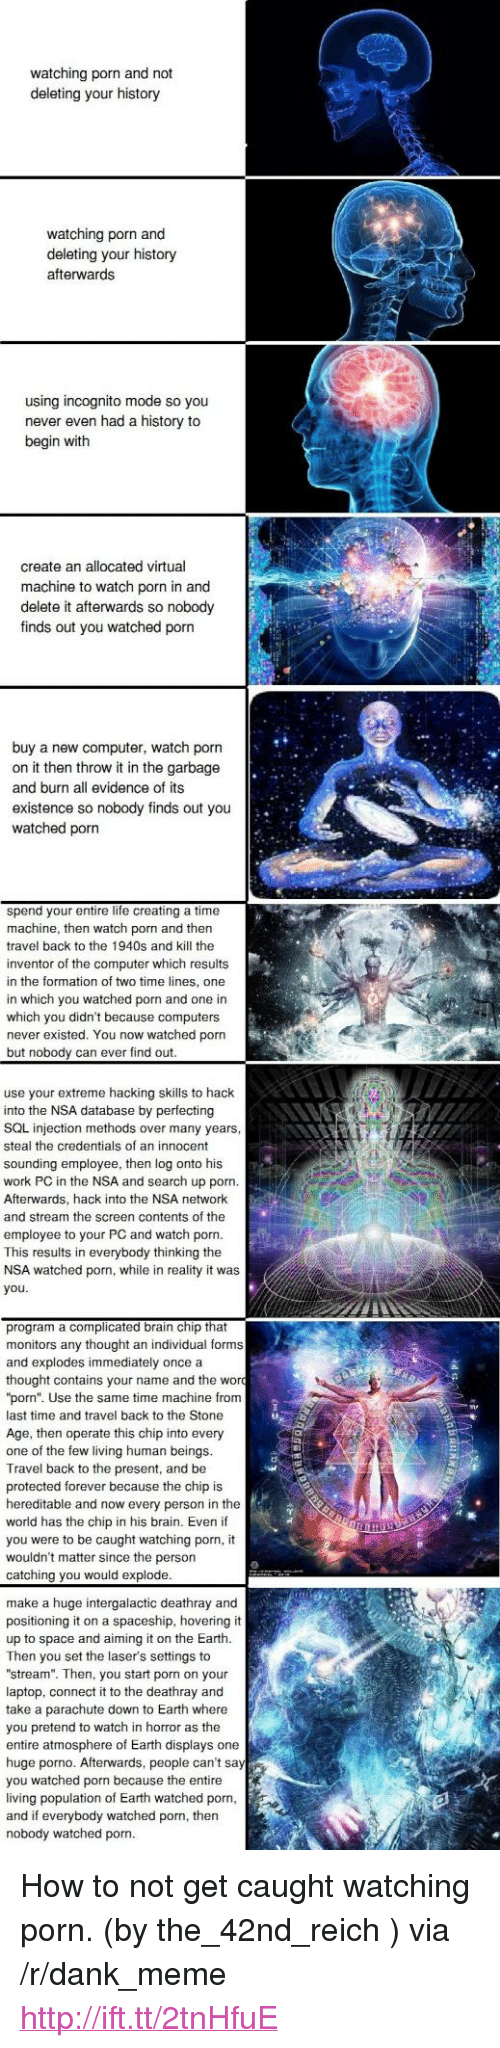 """Computers, Dank, and Life: watching porn and not  deleting your history  watching porn and  deleting your history  afterwards  using incognito mode so you  never even had a history to  begin with  create an allocated virtual  machine to watch porn in and  delete it afterwards so nobody  finds out you watched porn  buy a new computer, watch porn  on it then throw it in the garbage  and burn all evidence of its  existence so nobody finds out you  watched porn  spend your entire life creating a time  machine, then watch porn and then  travel back to the 1940s and kill the  inventor of the computer which results  in the formation of two time lines, one  in which you watched porn and one in  which you didn't because computers  never existed. You now watched porn  but nobody can ever find out  use your extreme hacking skills to hack  into the NSA database by perfecting  SQL injection methods over many years  steal the credentials of an innocent  sounding employee, then log onto his  work PC in the NSA and search up porn.  Afterwards, hack into the NSA network  and stream the screen contents of the  employee to your PC and watch porn  This results in everybody thinking the  NSA watched porn, while in reality it was  you  program a complicated brain chip that  monitors any thought an individual forms  and explodes immediately once a  thought contains your name and the wor  """"porn"""". Use the same time machine frorm  last time and travel back to the Stone  Age, then operate this chip into every  one of the few living human beings  Travel back to the present, and be  protected forever because the chip is  hereditable and now every person in the  world has the chip in his brain. Even if  you were to be caught watching porn  wouldn't matter since the person  catching you would explode  make a huge intergalactic deathray and  positioning it on a spaceship, hovering it  up to space and aiming it on the Earth.  Then you set the laser's settings to  """"stream"""". Then, you start porn on y"""